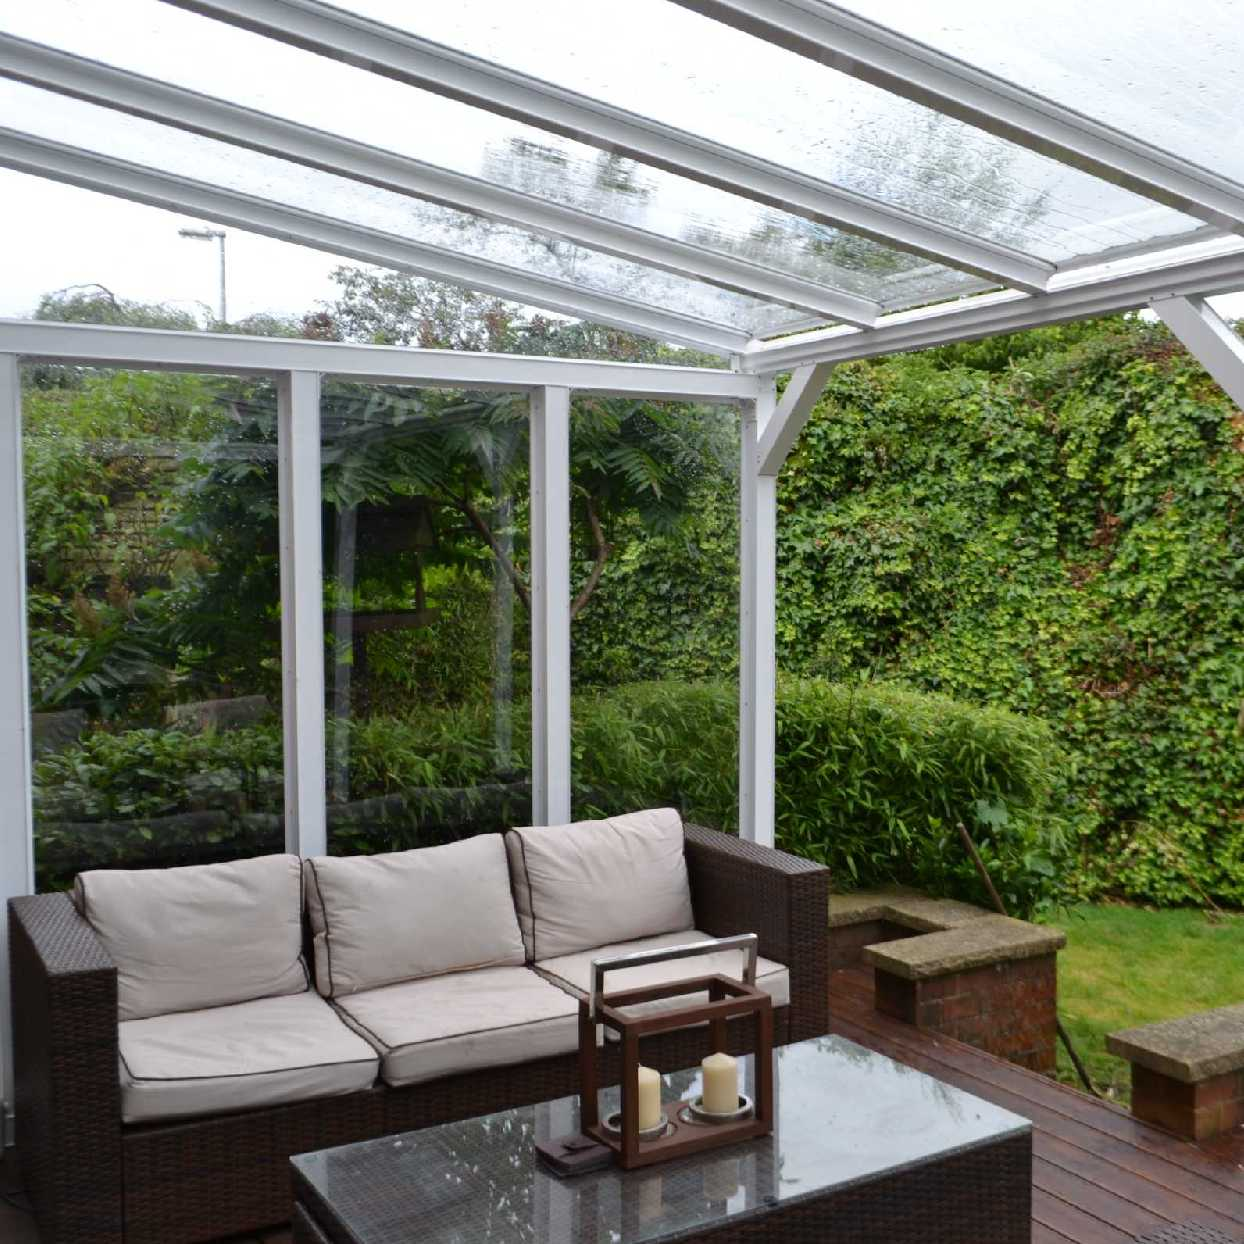 Great selection of Omega Smart Lean-To Canopy with 16mm Polycarbonate Glazing - 6.0m (W) x 3.0m (P), (3) Supporting Posts